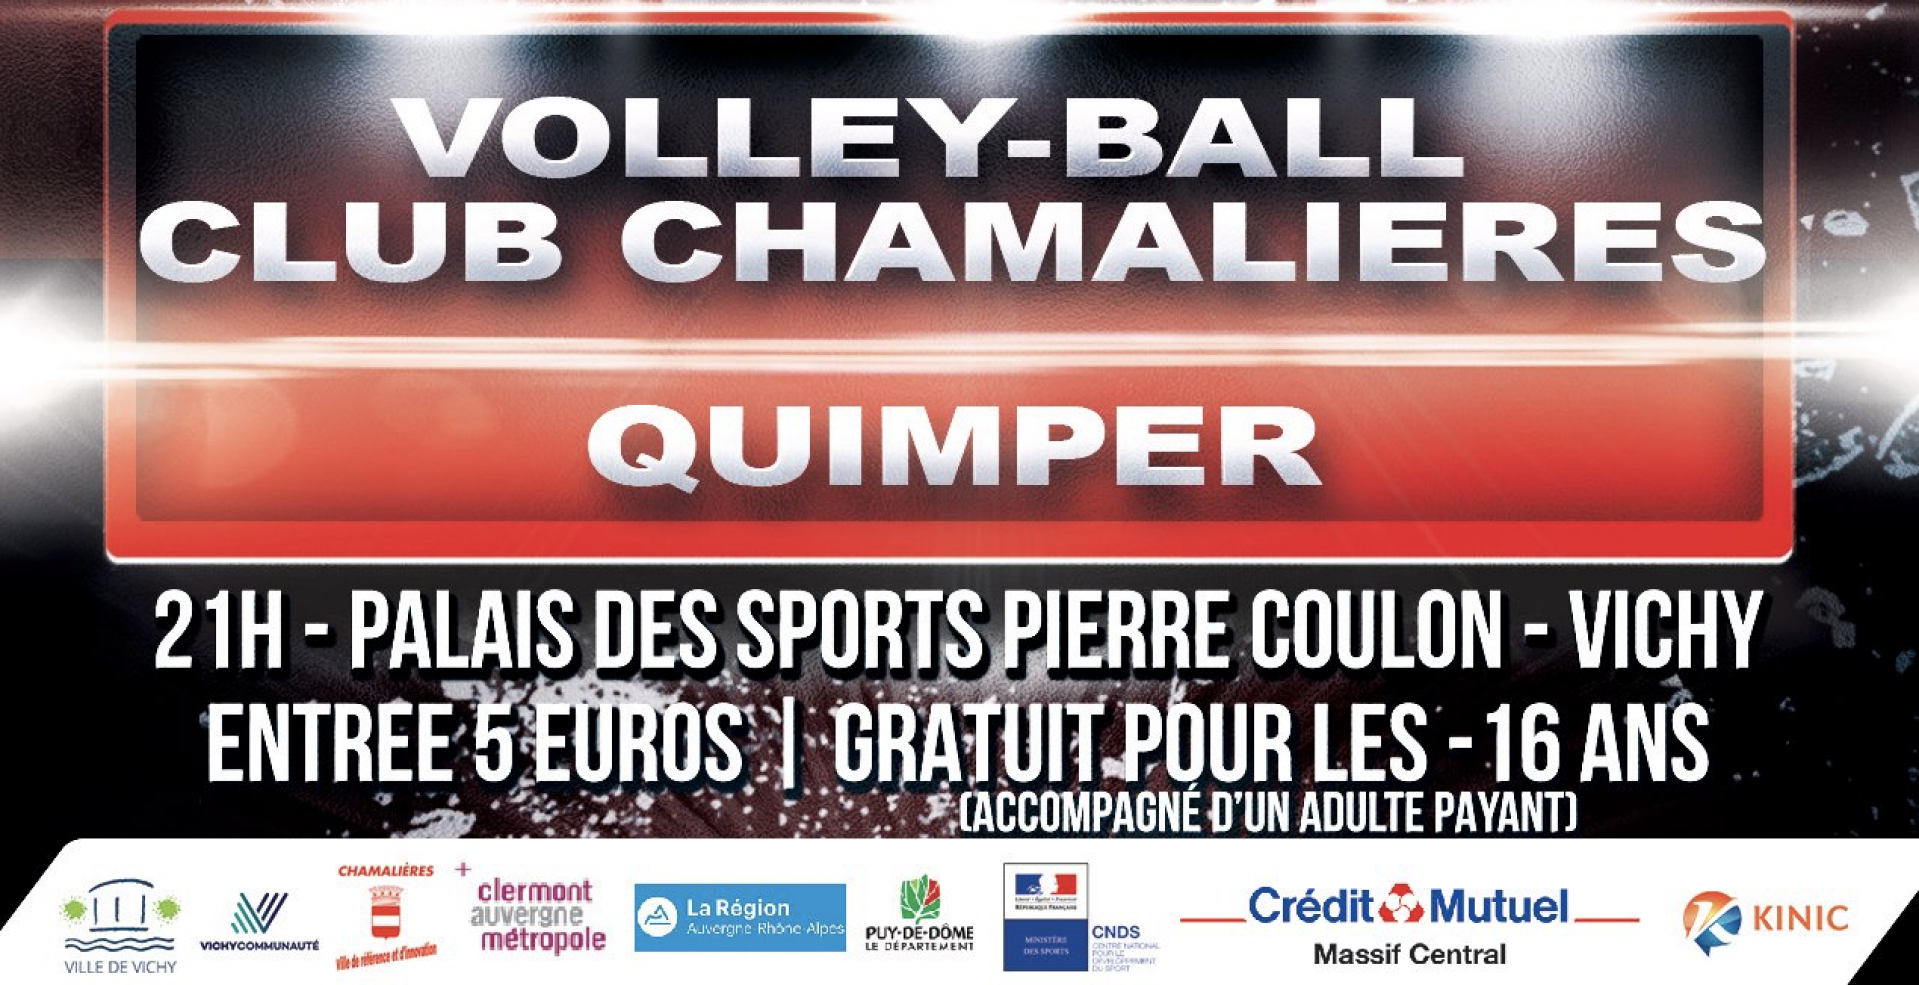 Match Volley-Ball : Chamalieres contre Quimper à Vichy